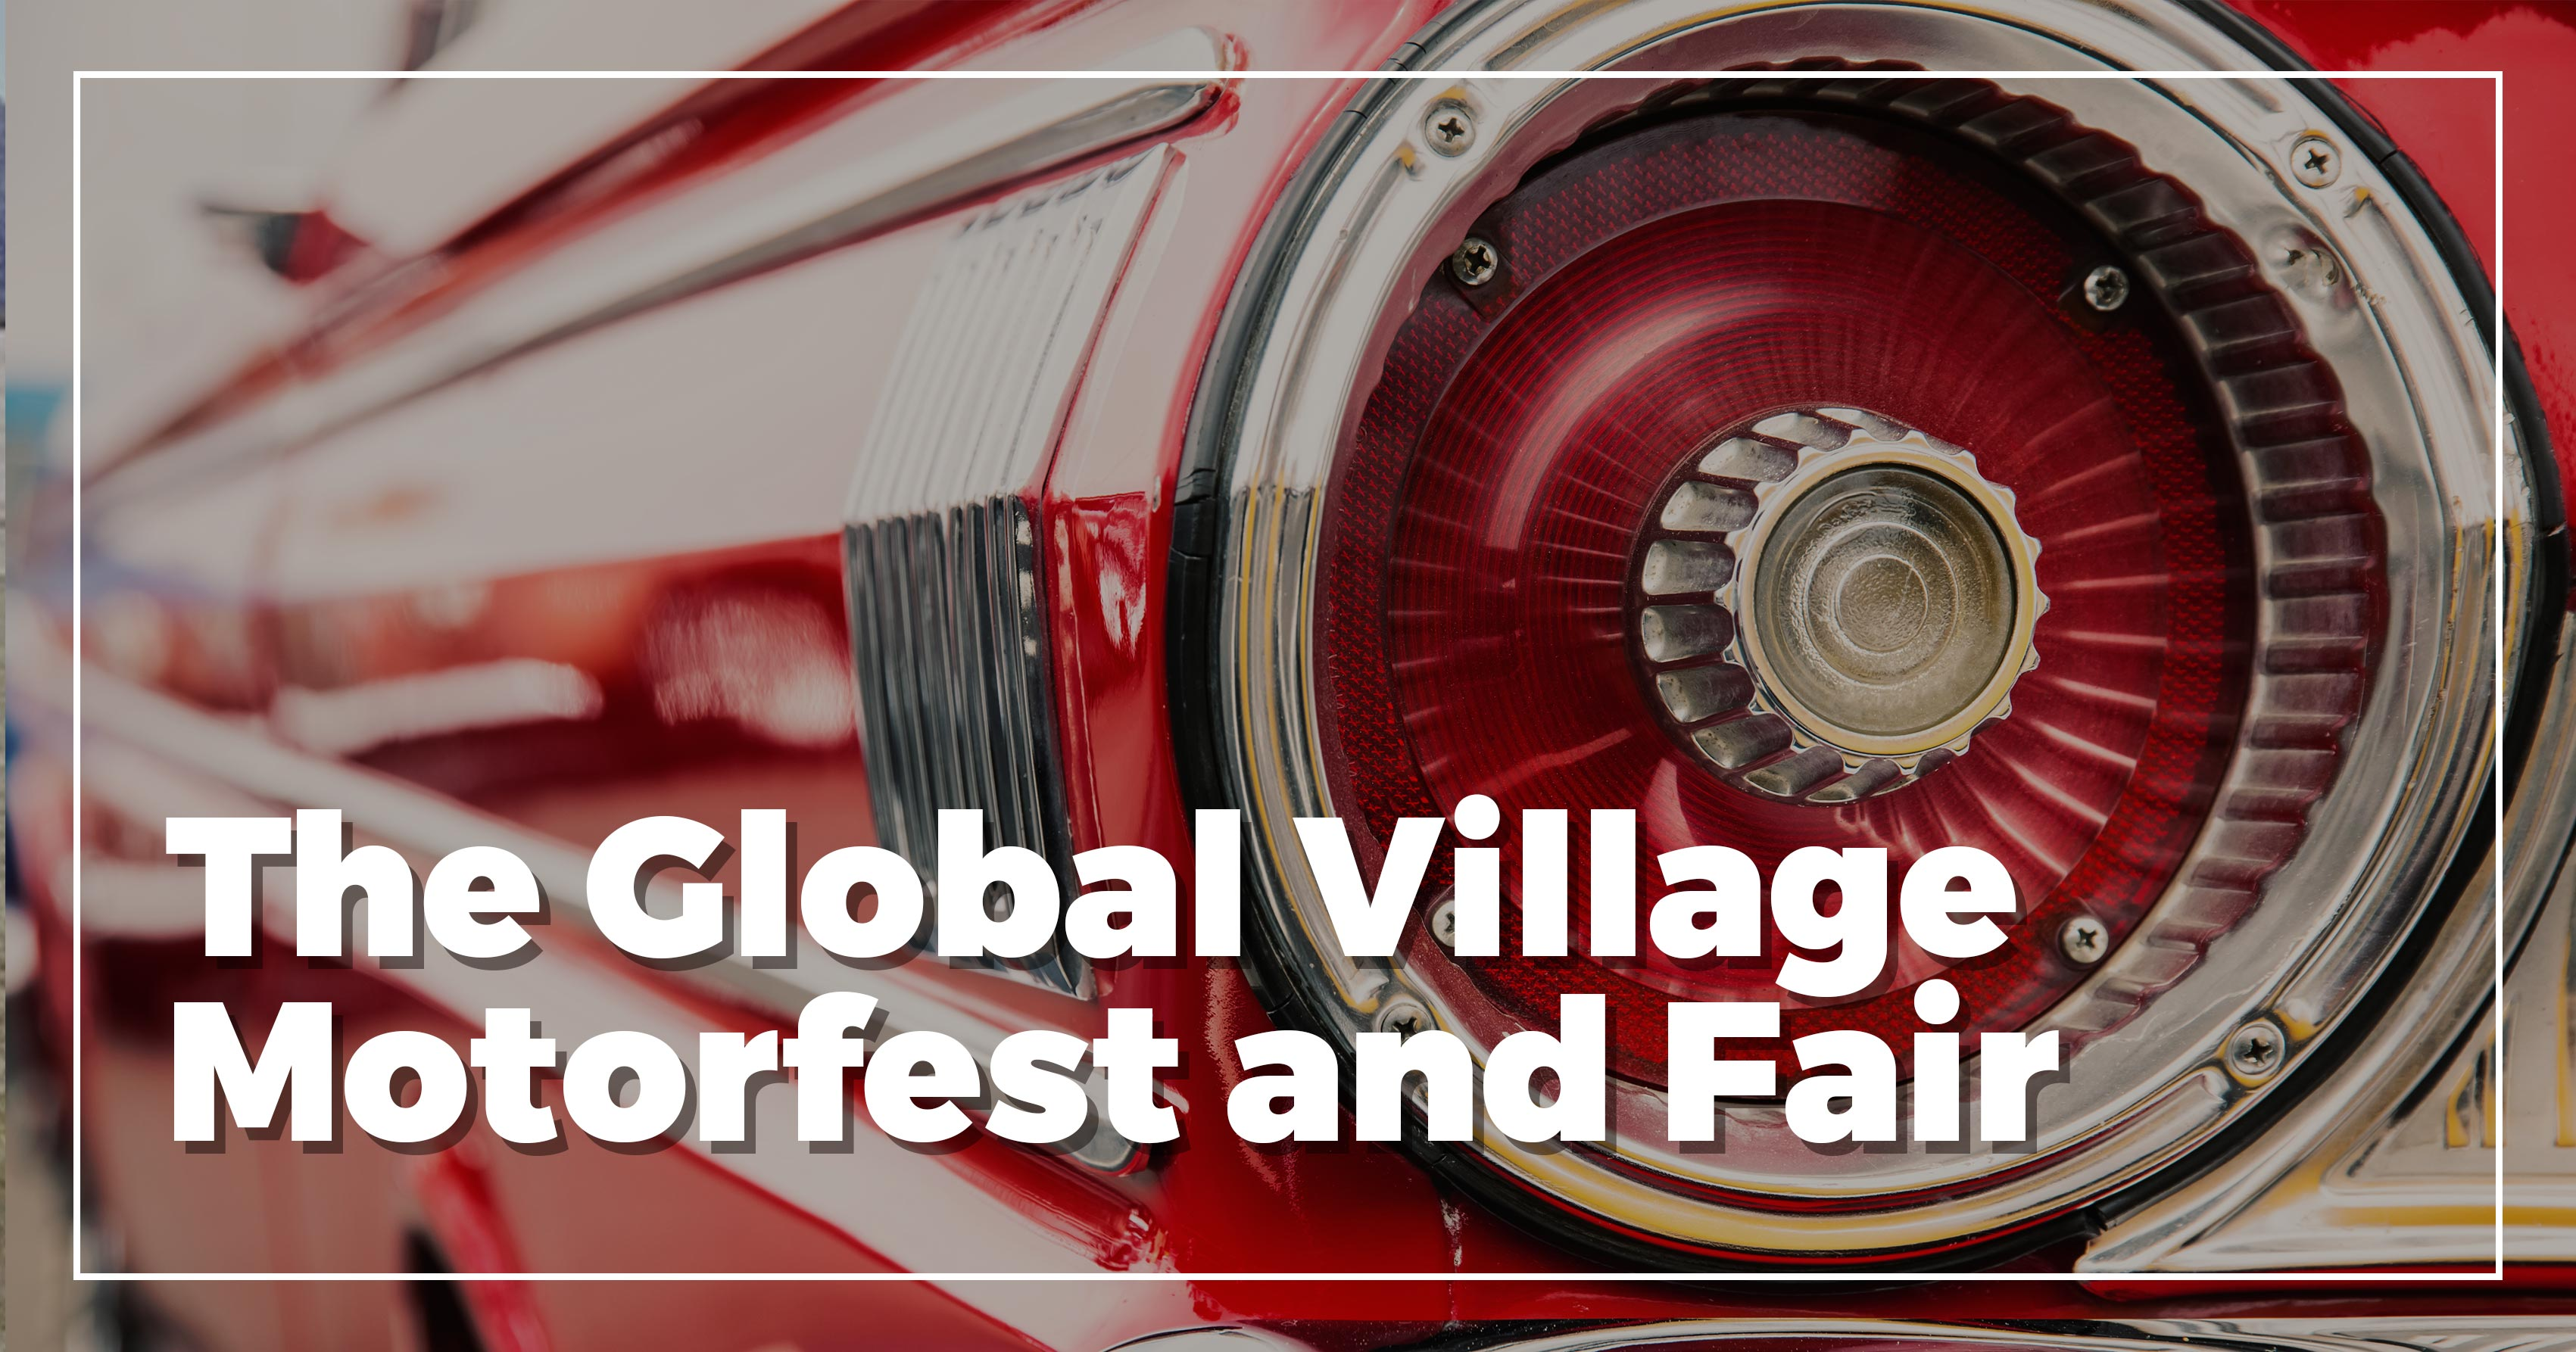 THE GLOBAL VILLAGE MOTORFEST AND FAIR - Upper Hunter Festivals and Events